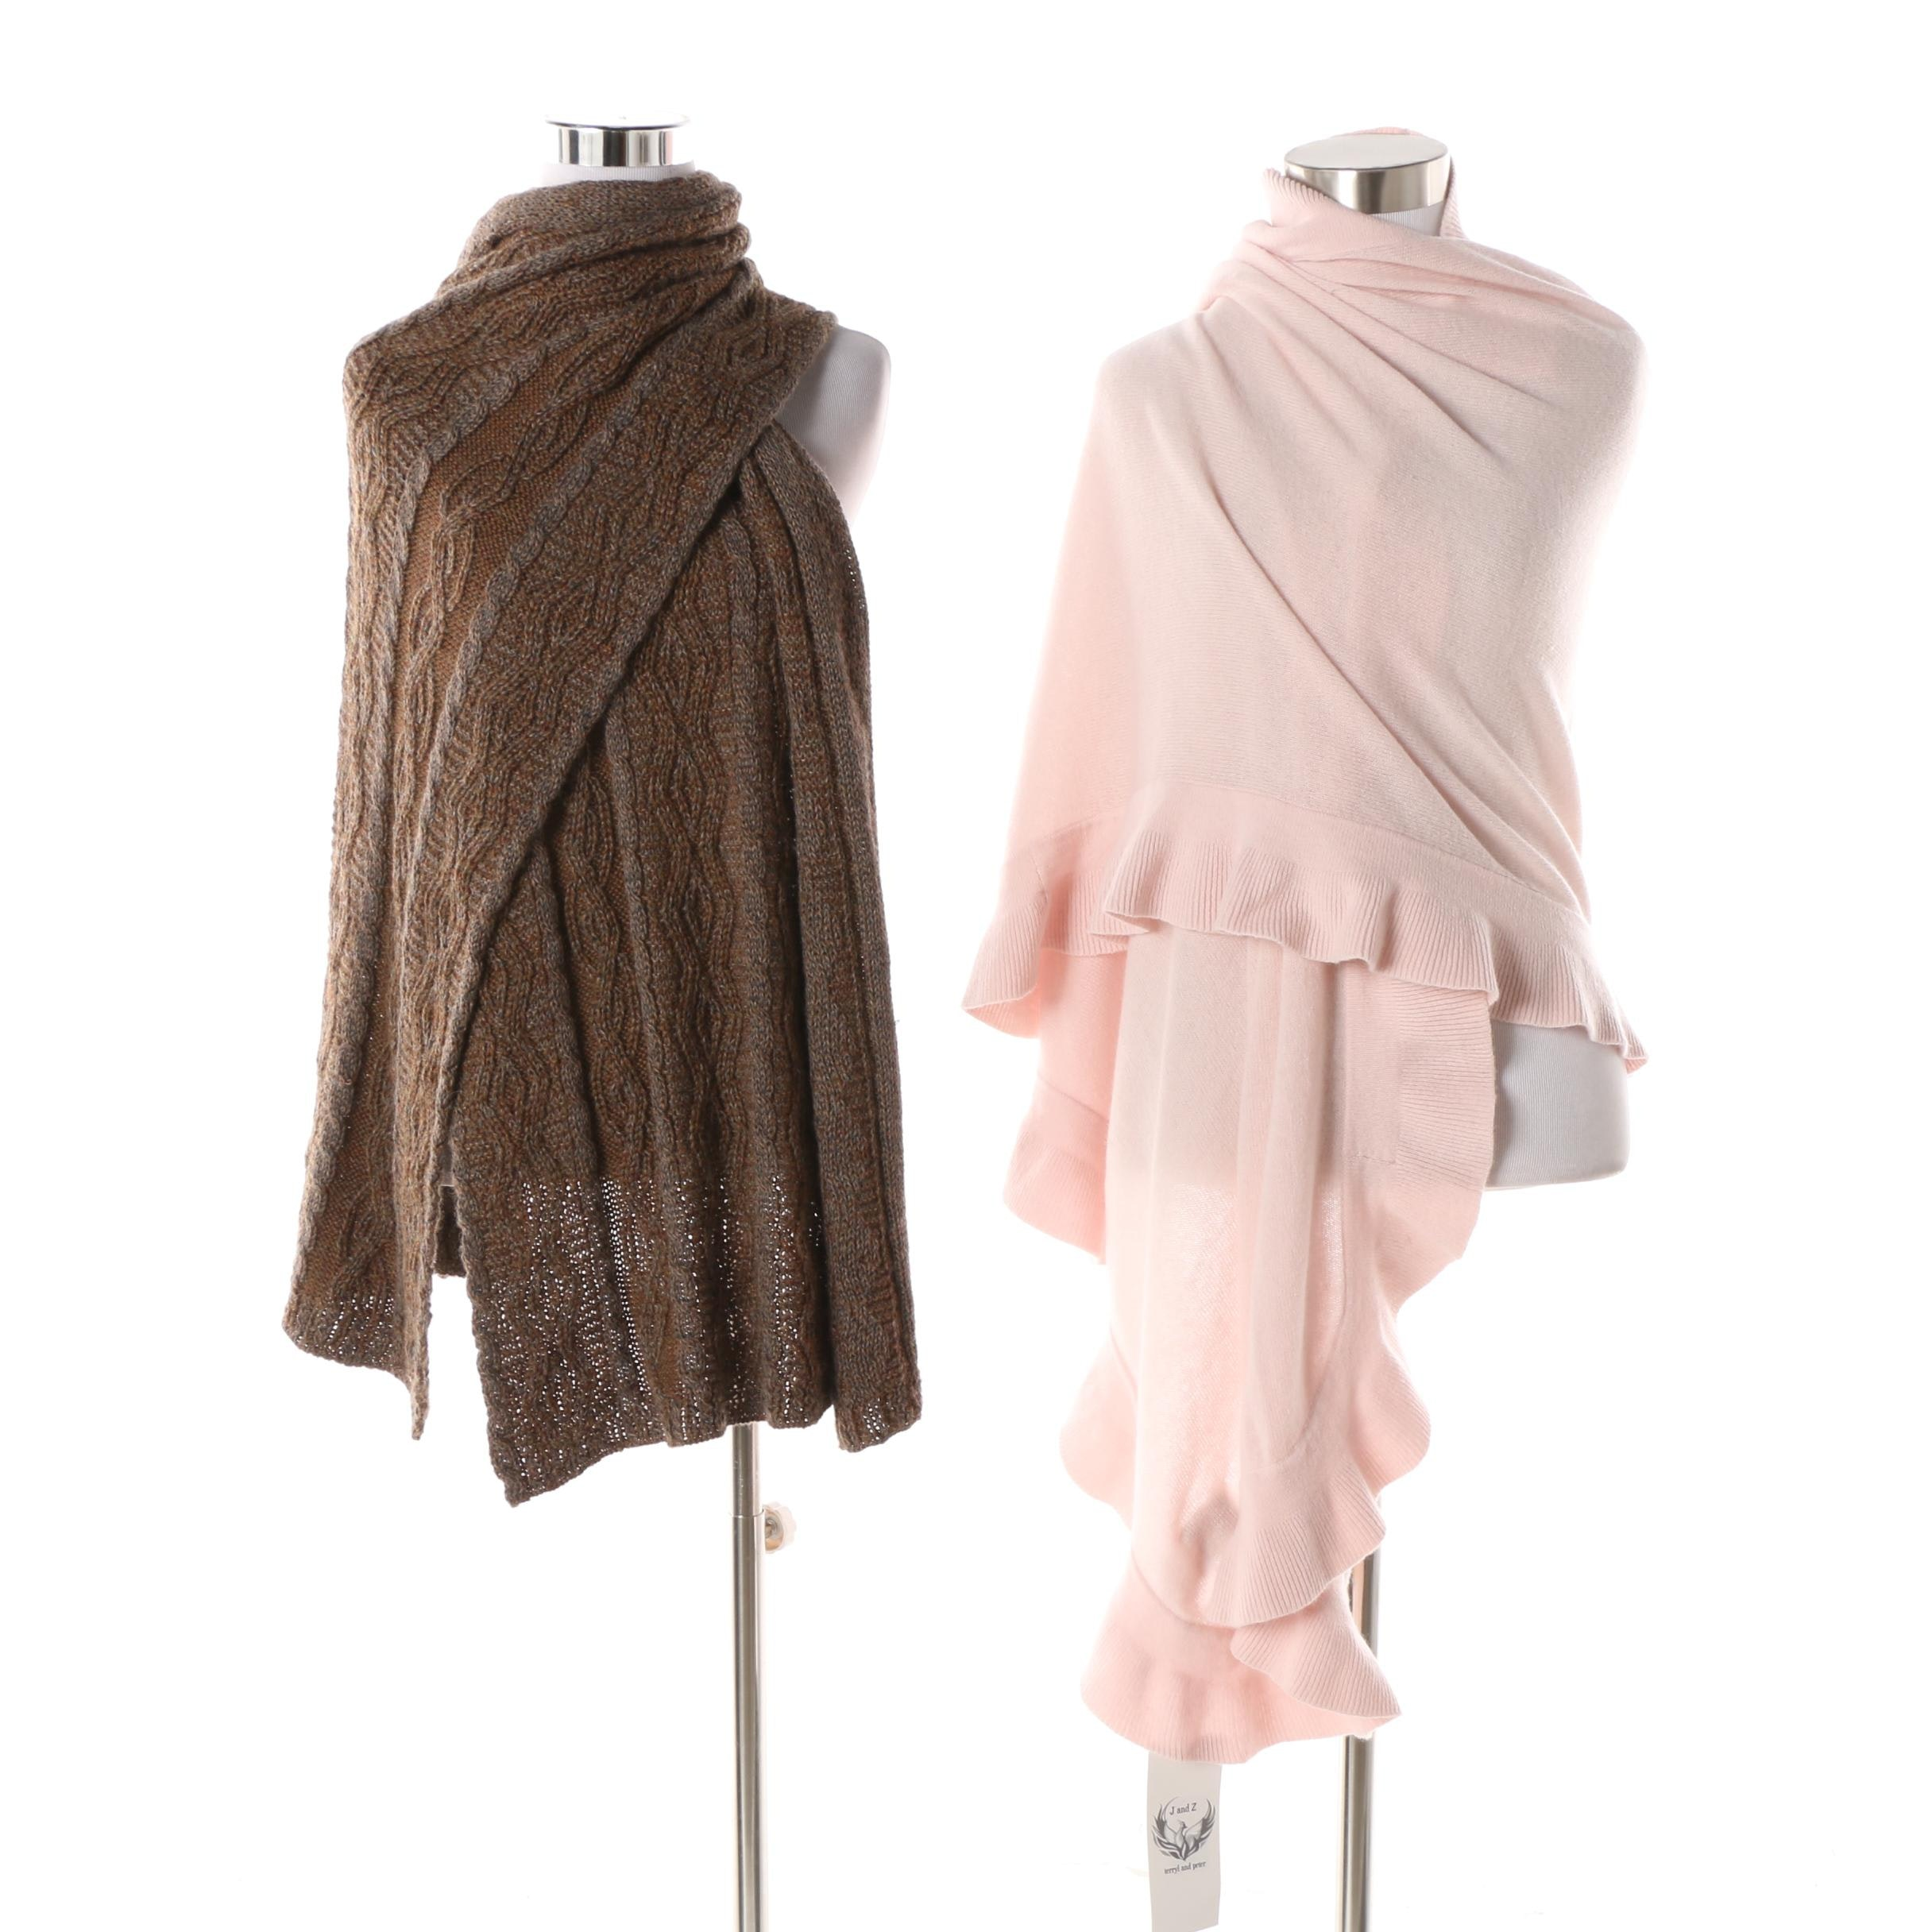 Terryl and Peter Cashmere and Inis Meáin Wool Blend Shawls